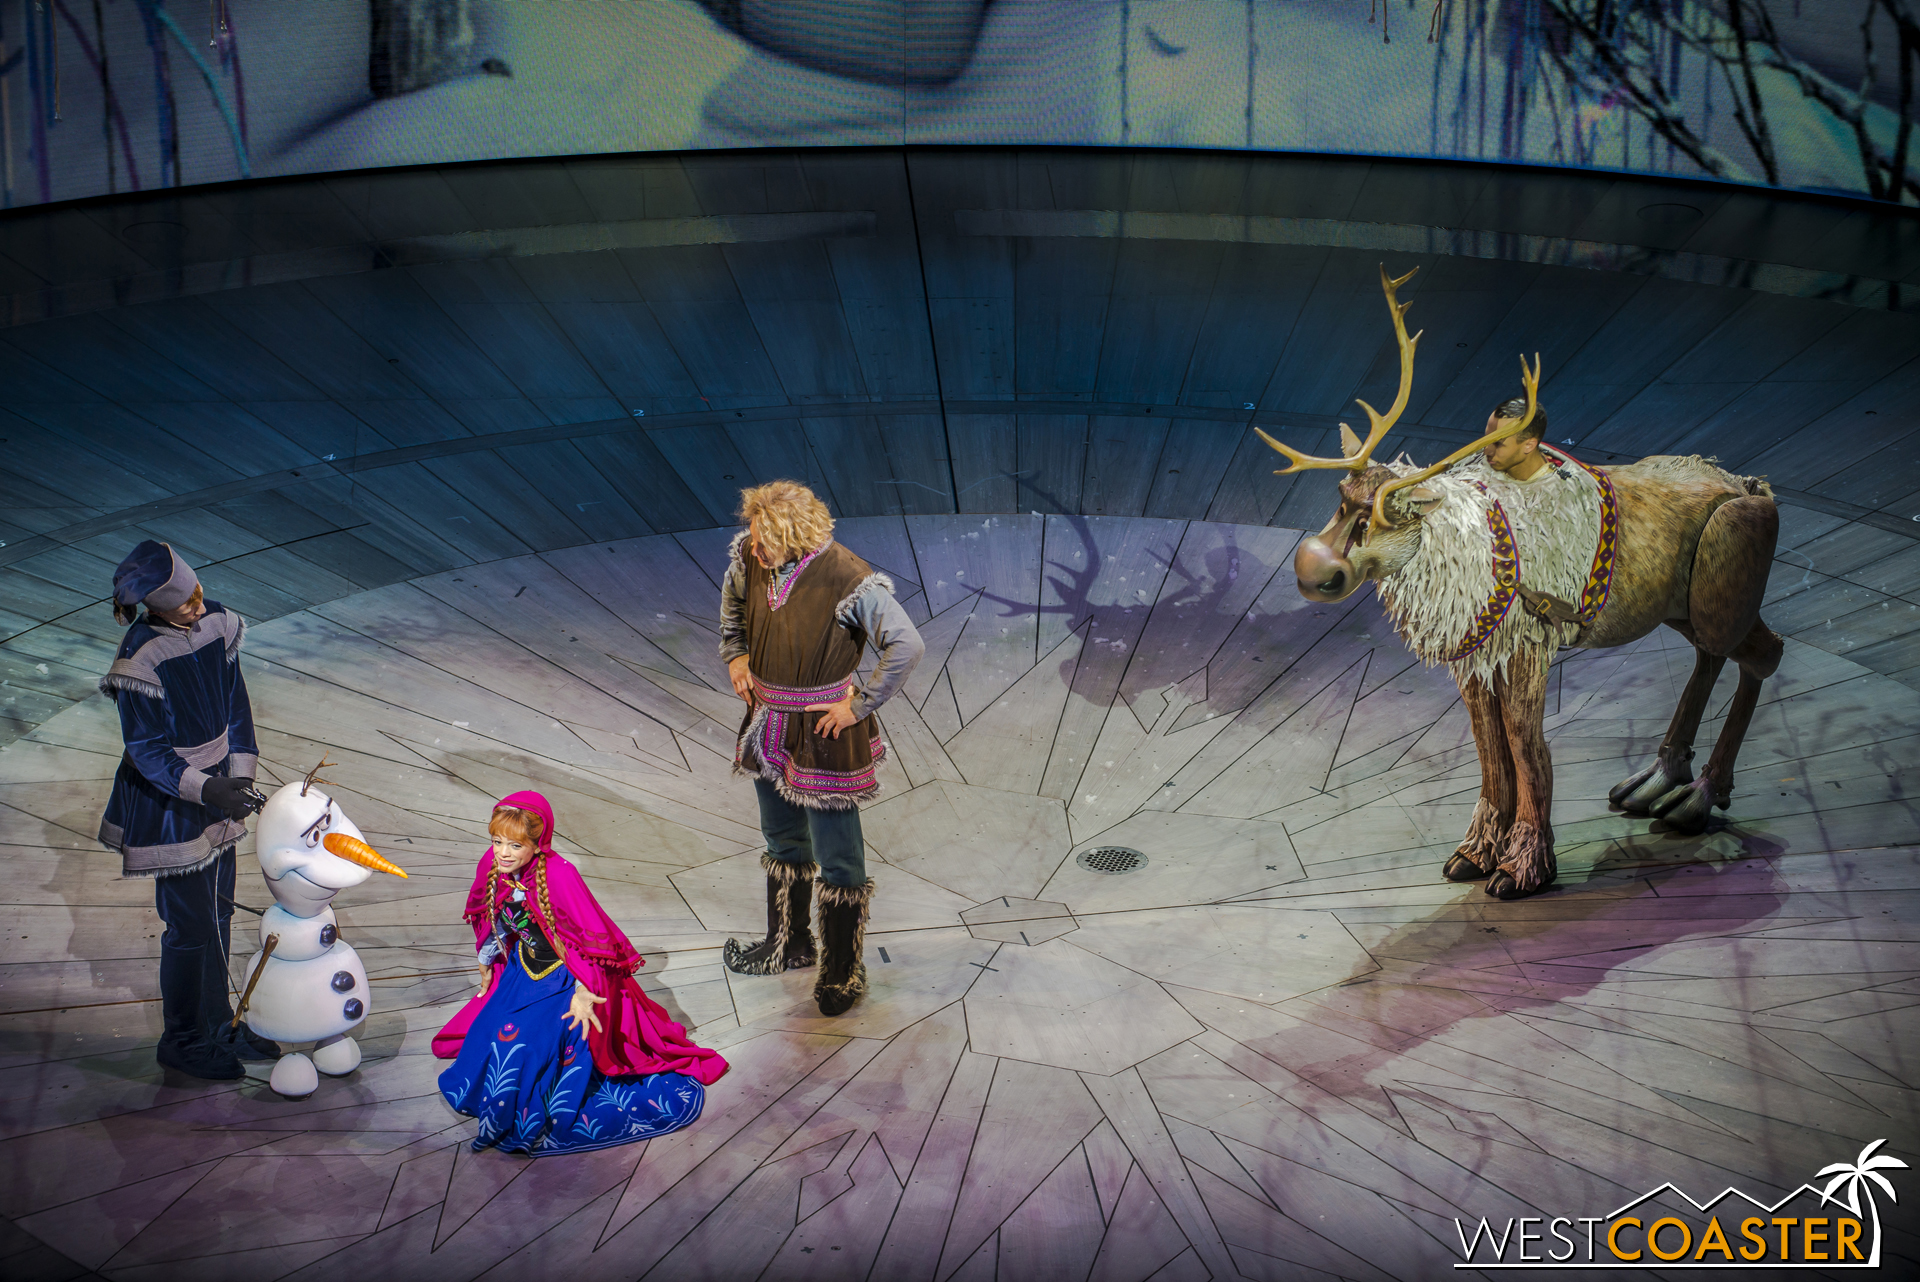 Fortunately, the trio are able to escape the emo lupines when they are saved by Olaf, the Enchanted Snowman.